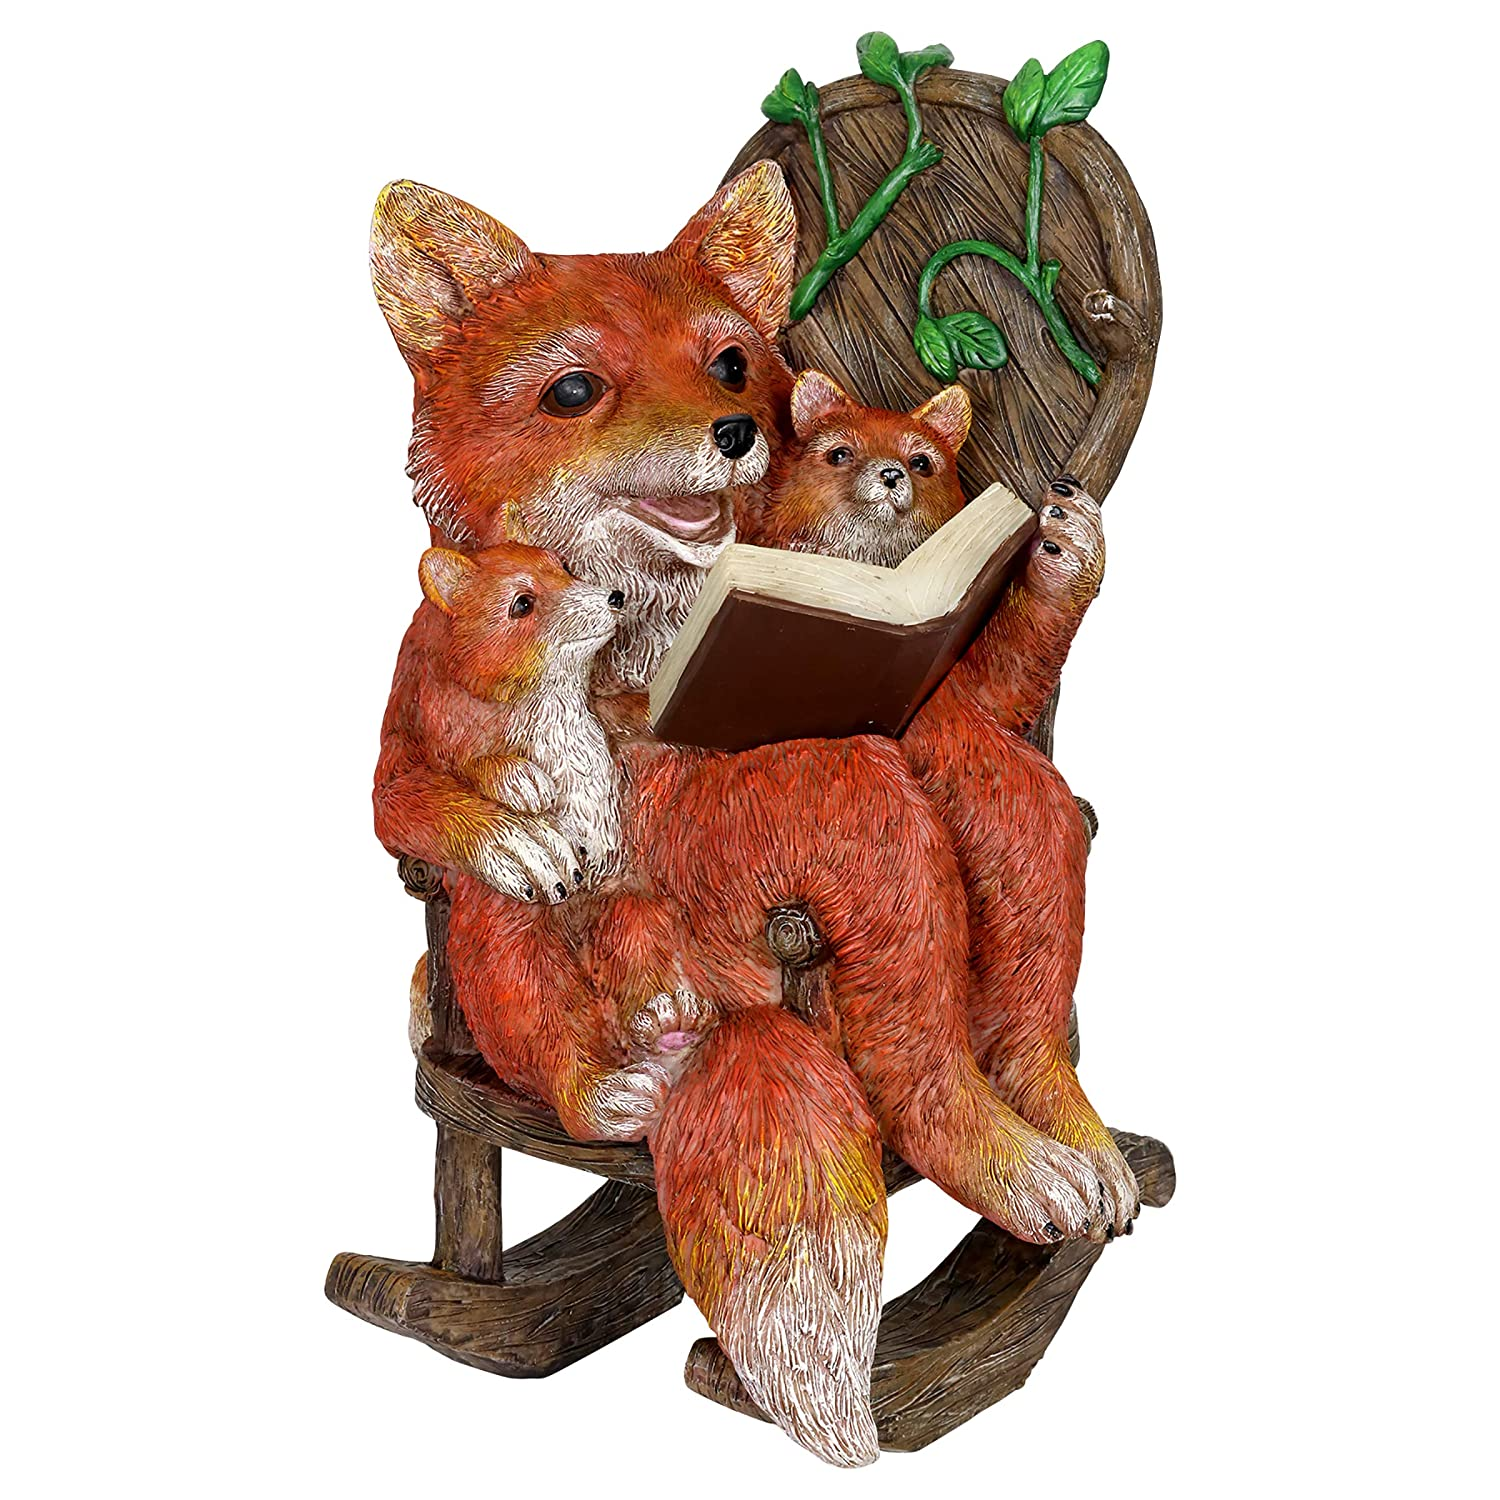 "Exhart Solar Fox Family Reading a Book on a Rocking Chair Garden Statue – Bookworm Foxes Mini Figurine w/Solar LED Lights, Booklovers Fox Statue, Resin Fox Decorations, 8.3 x 8.3 W x 12.2"" H"